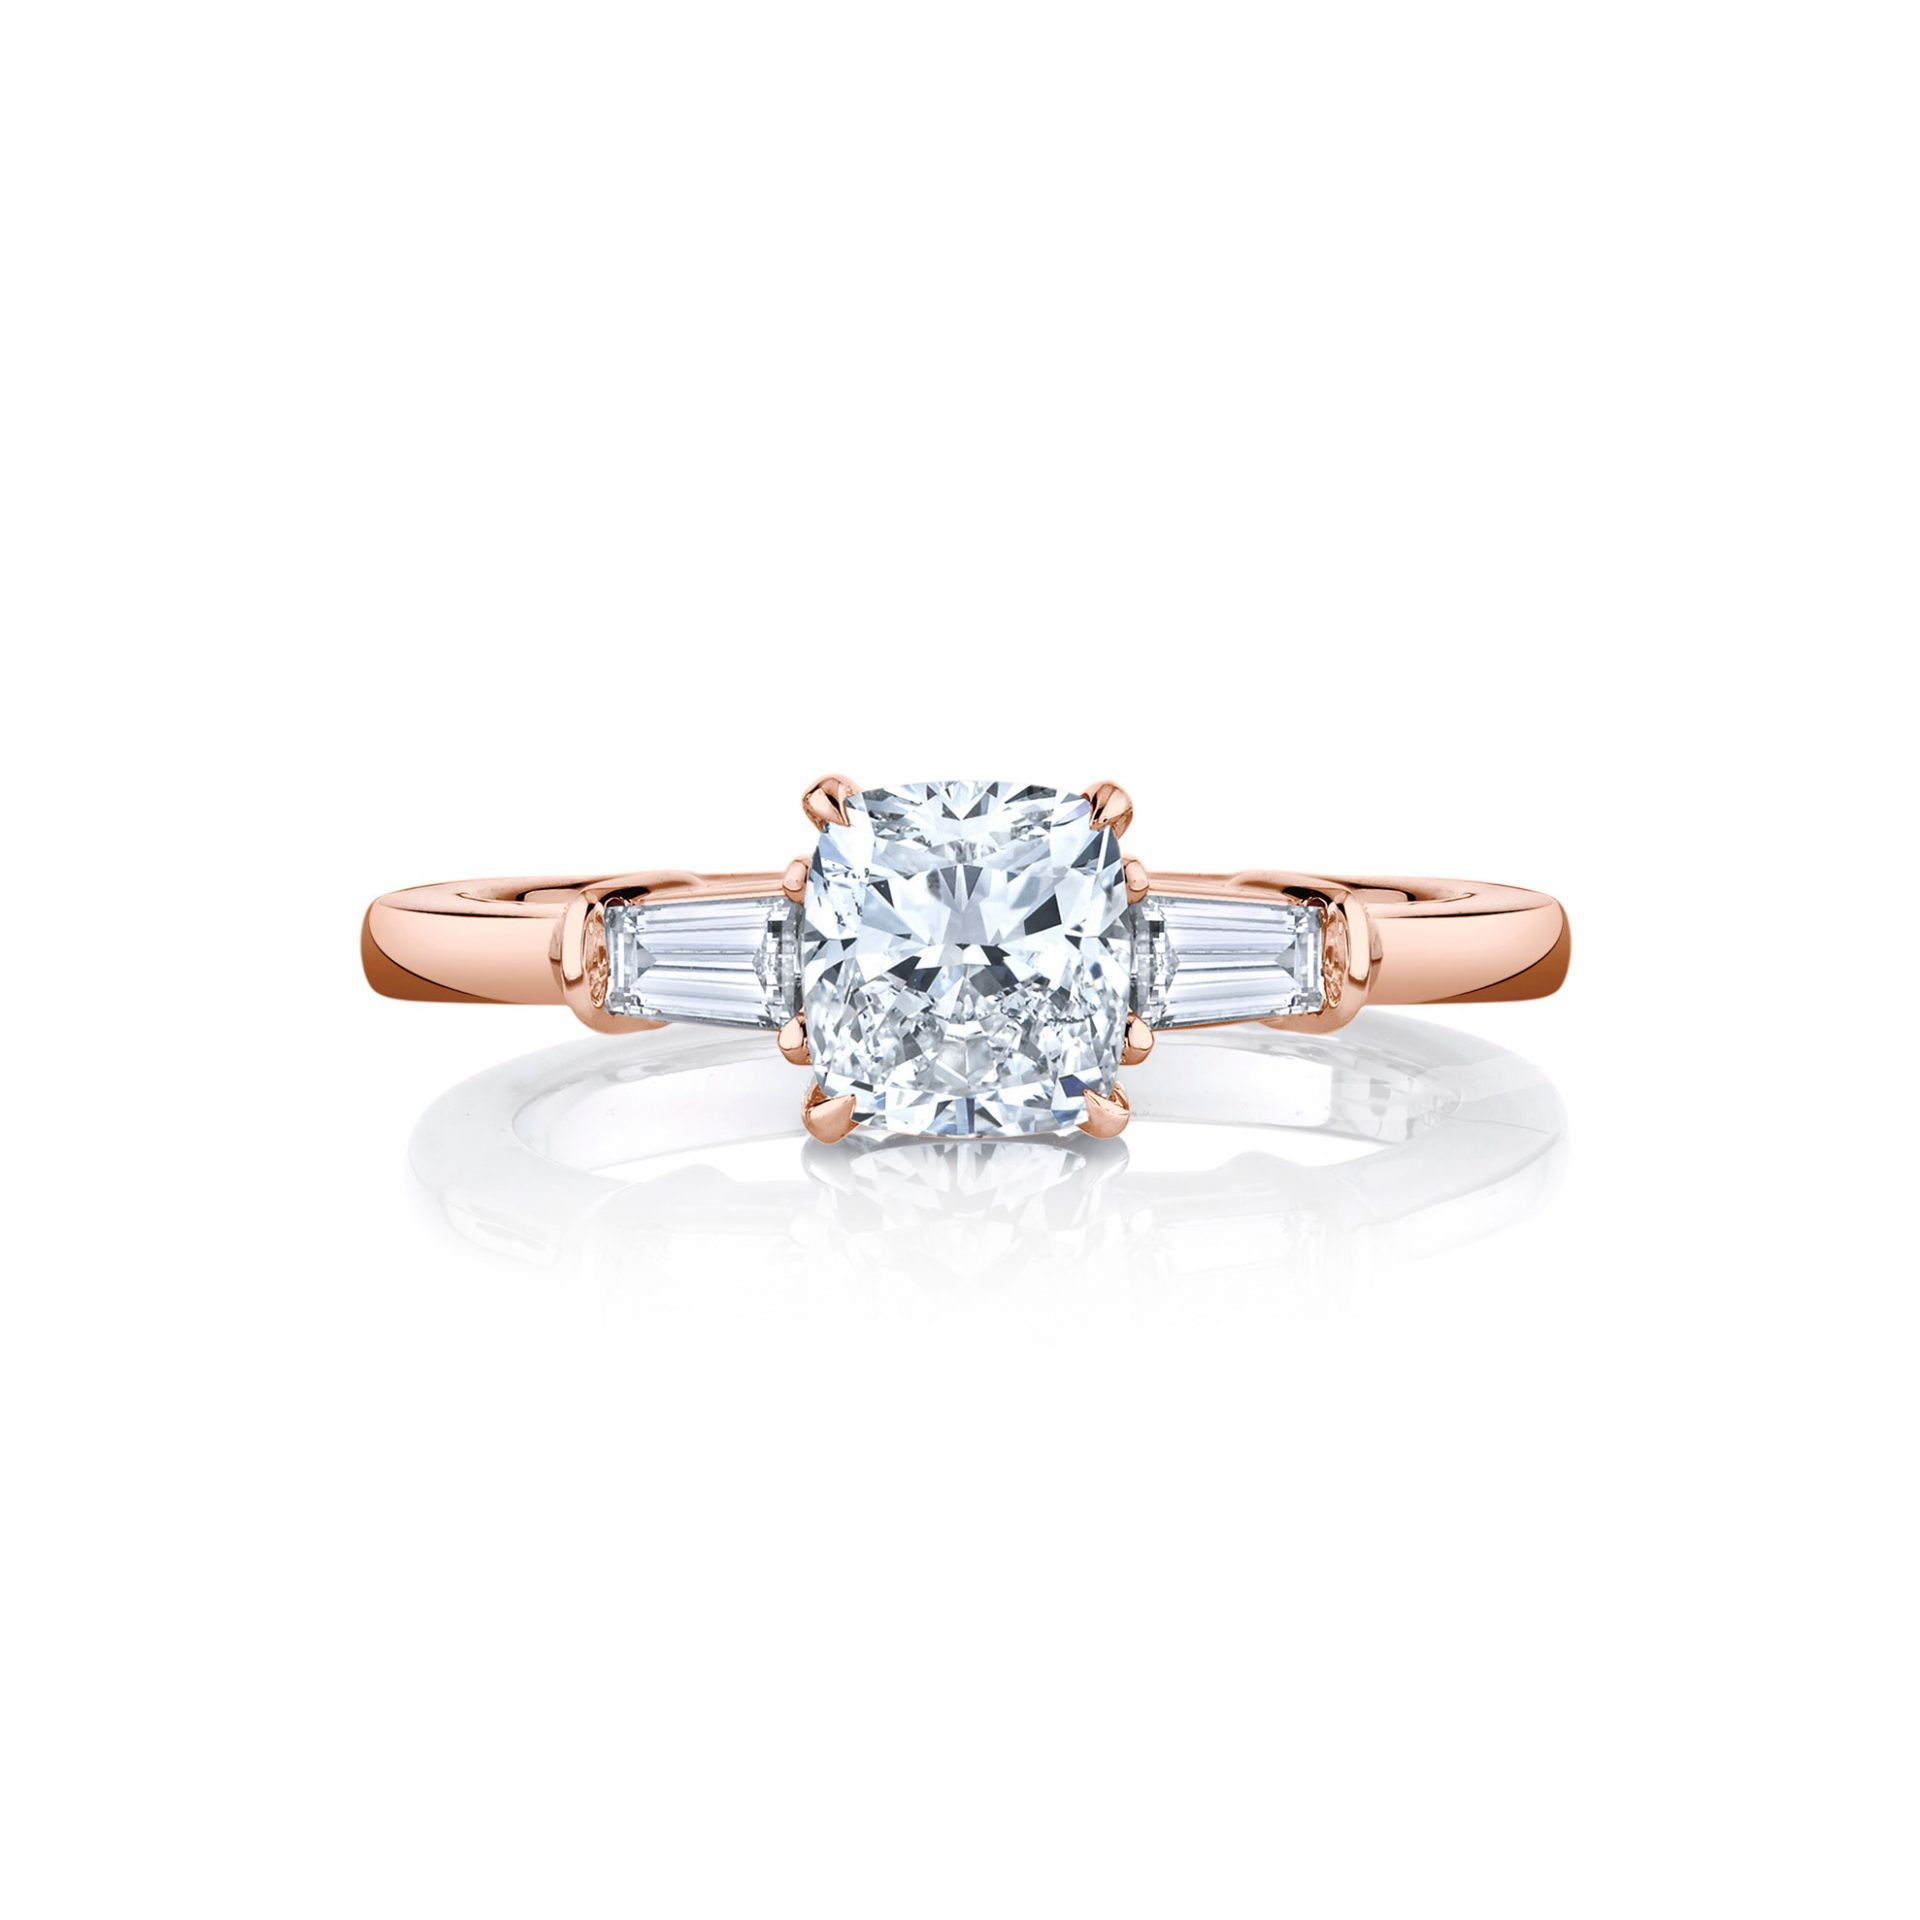 Claire Cushion Three Stone Engagement Ring with tapered baguette diamond side stones in 18k Rose Gold Front View by Oui by Jean Dousset